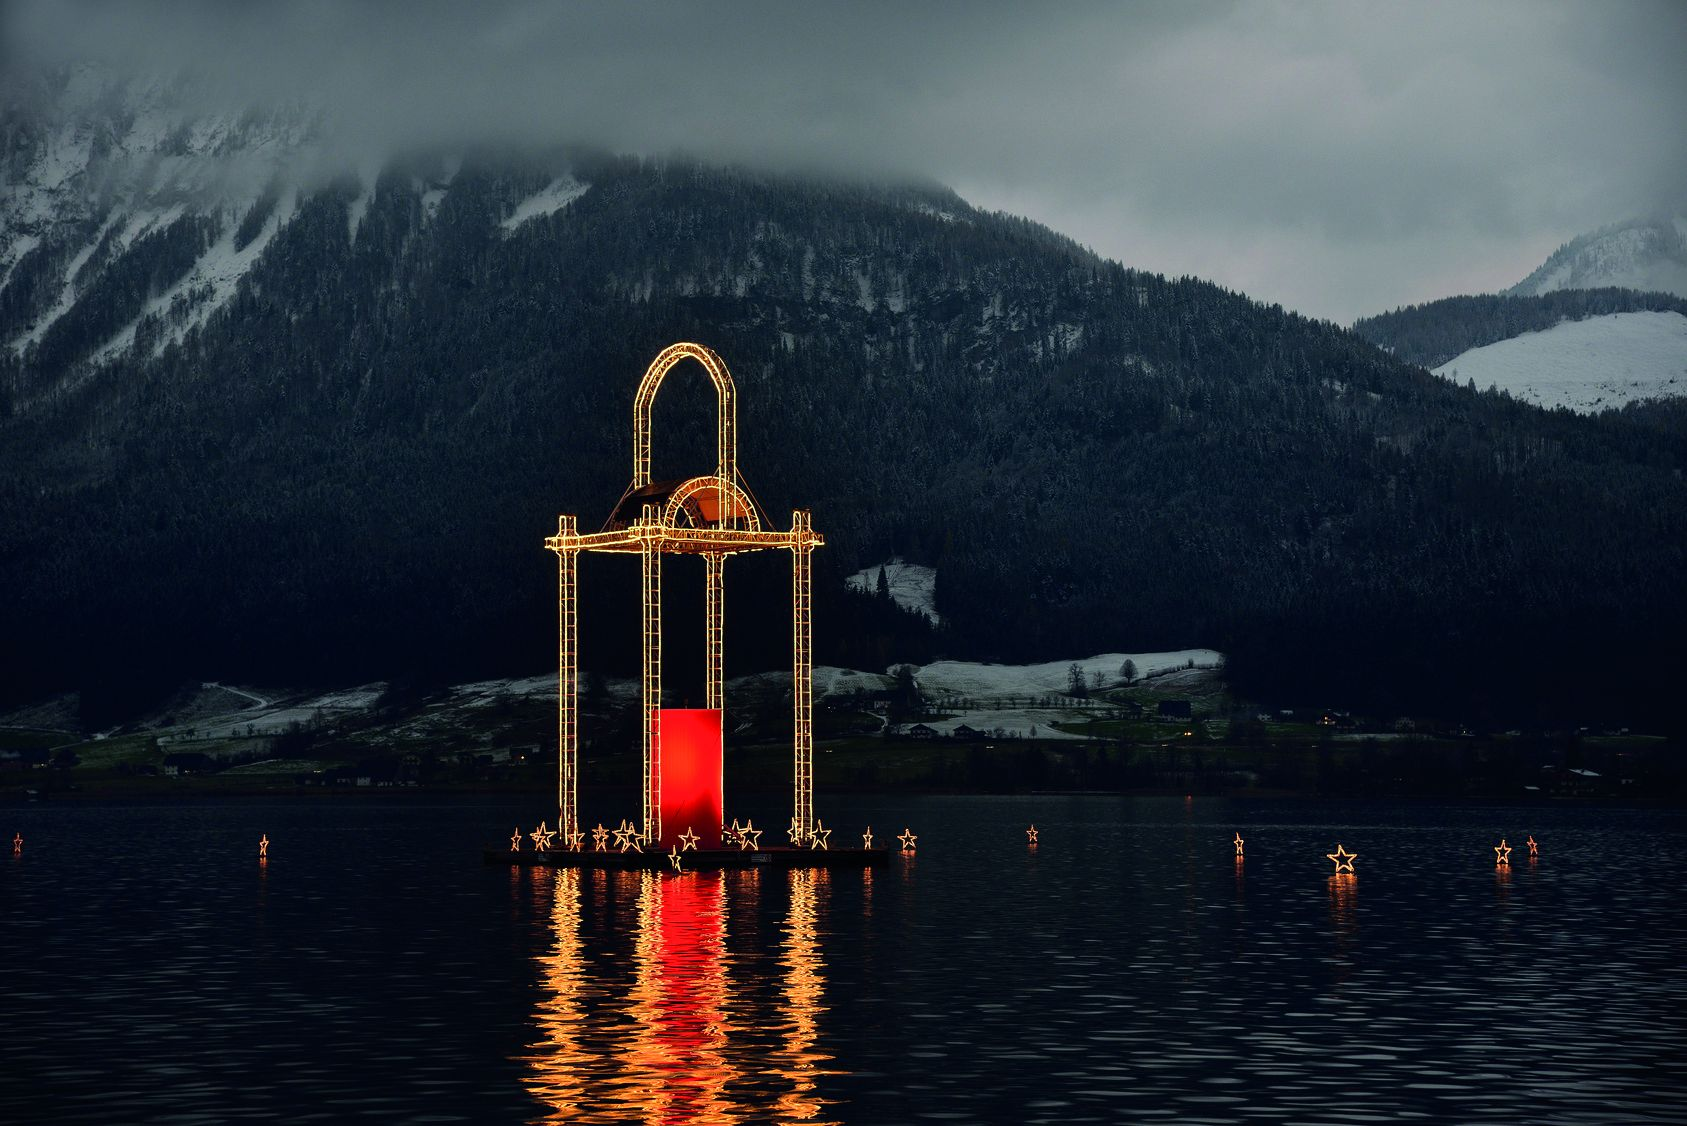 Advent am Wolfgangsee